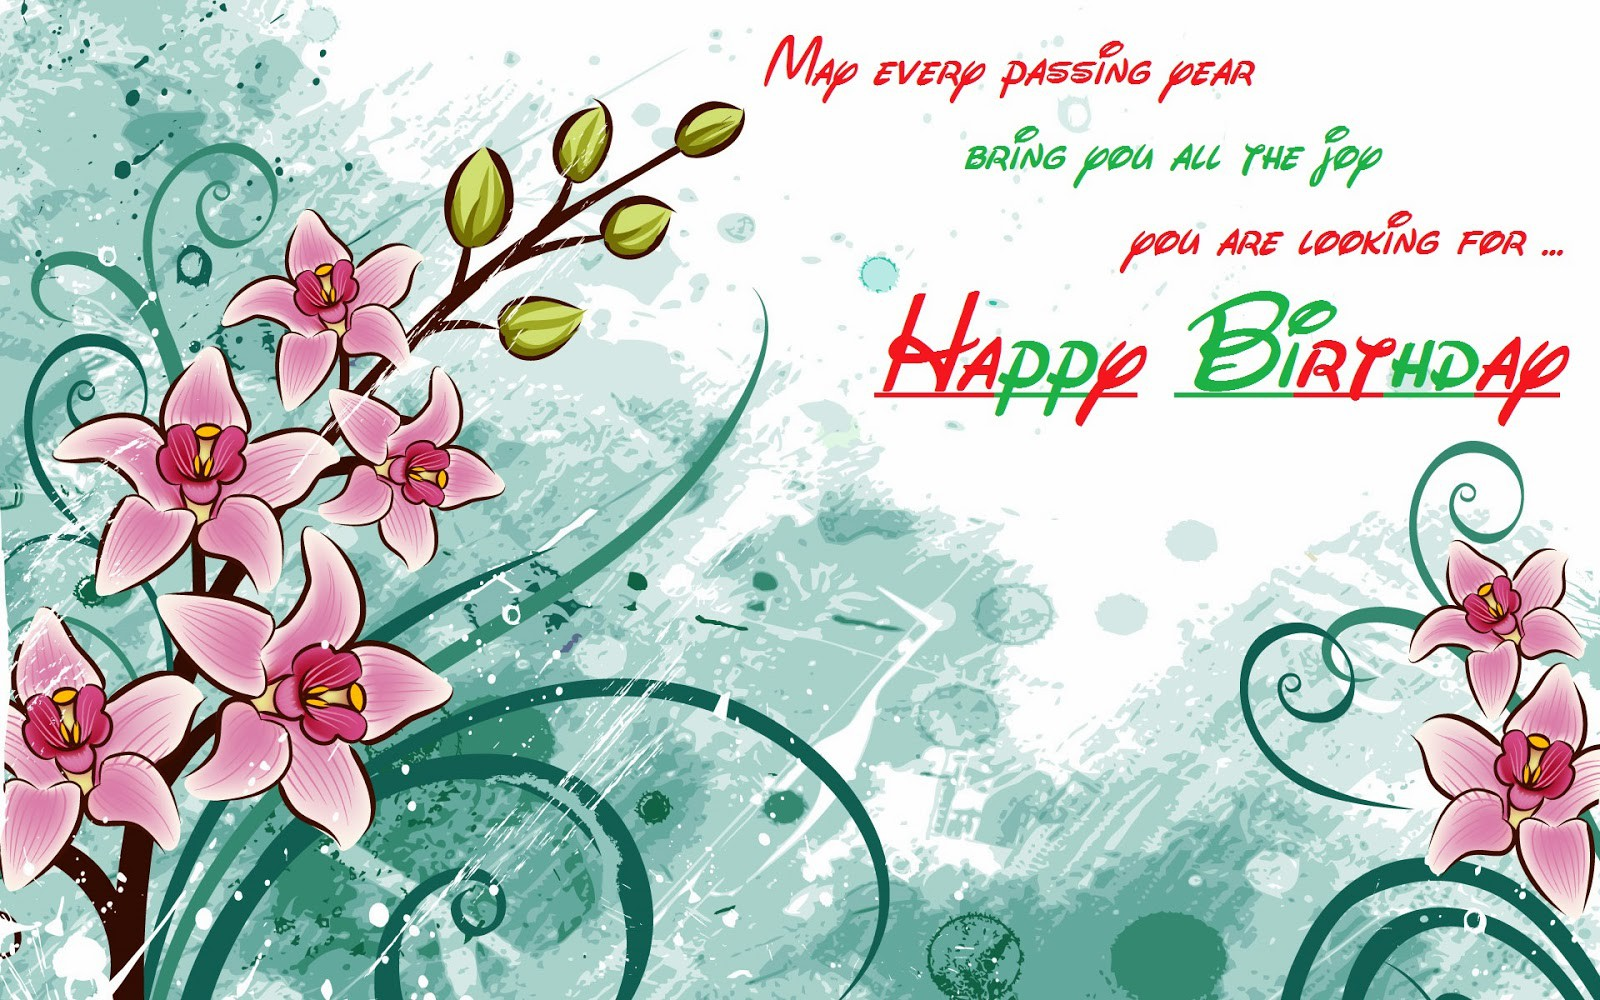 birthday wishes background wallpaper ; cd7a4a52130f35983bfbfddfedb82cba